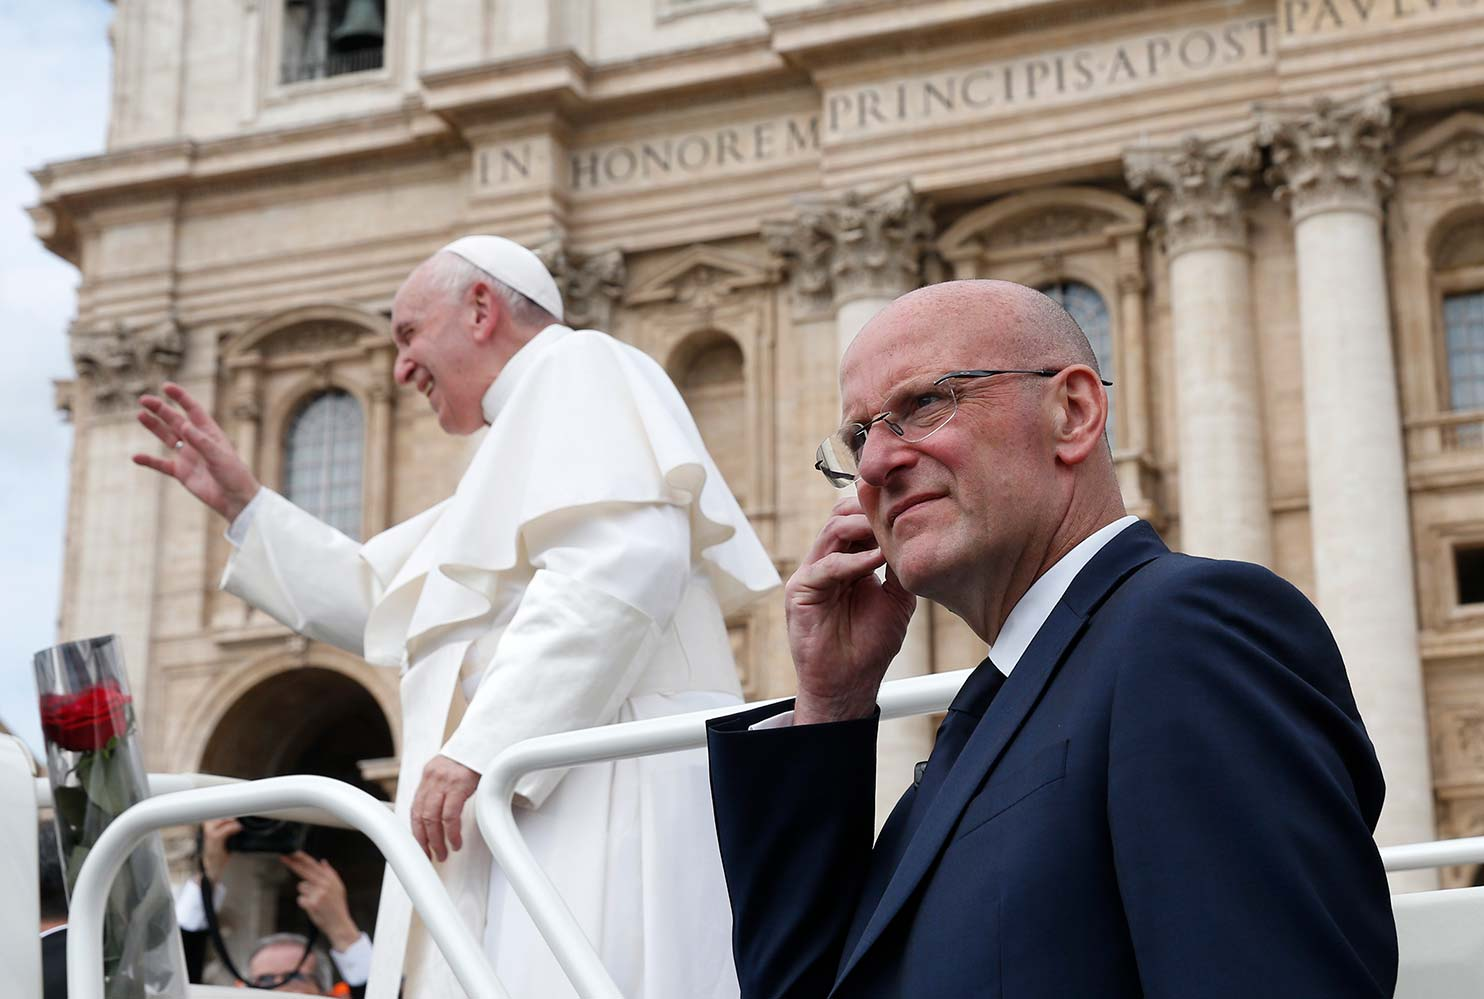 Domenico Giani, lead bodyguard for Pope Francis and head of the Vatican police force, keeps watch as the pope leaves his general audience in St. Peter's Square at the Vatican May 1. Pope Francis accepted the resignation of Giani Oct. 14, nearly two weeks after an internal security notice was leaked to the Italian press. (CNS photo/Paul Haring)